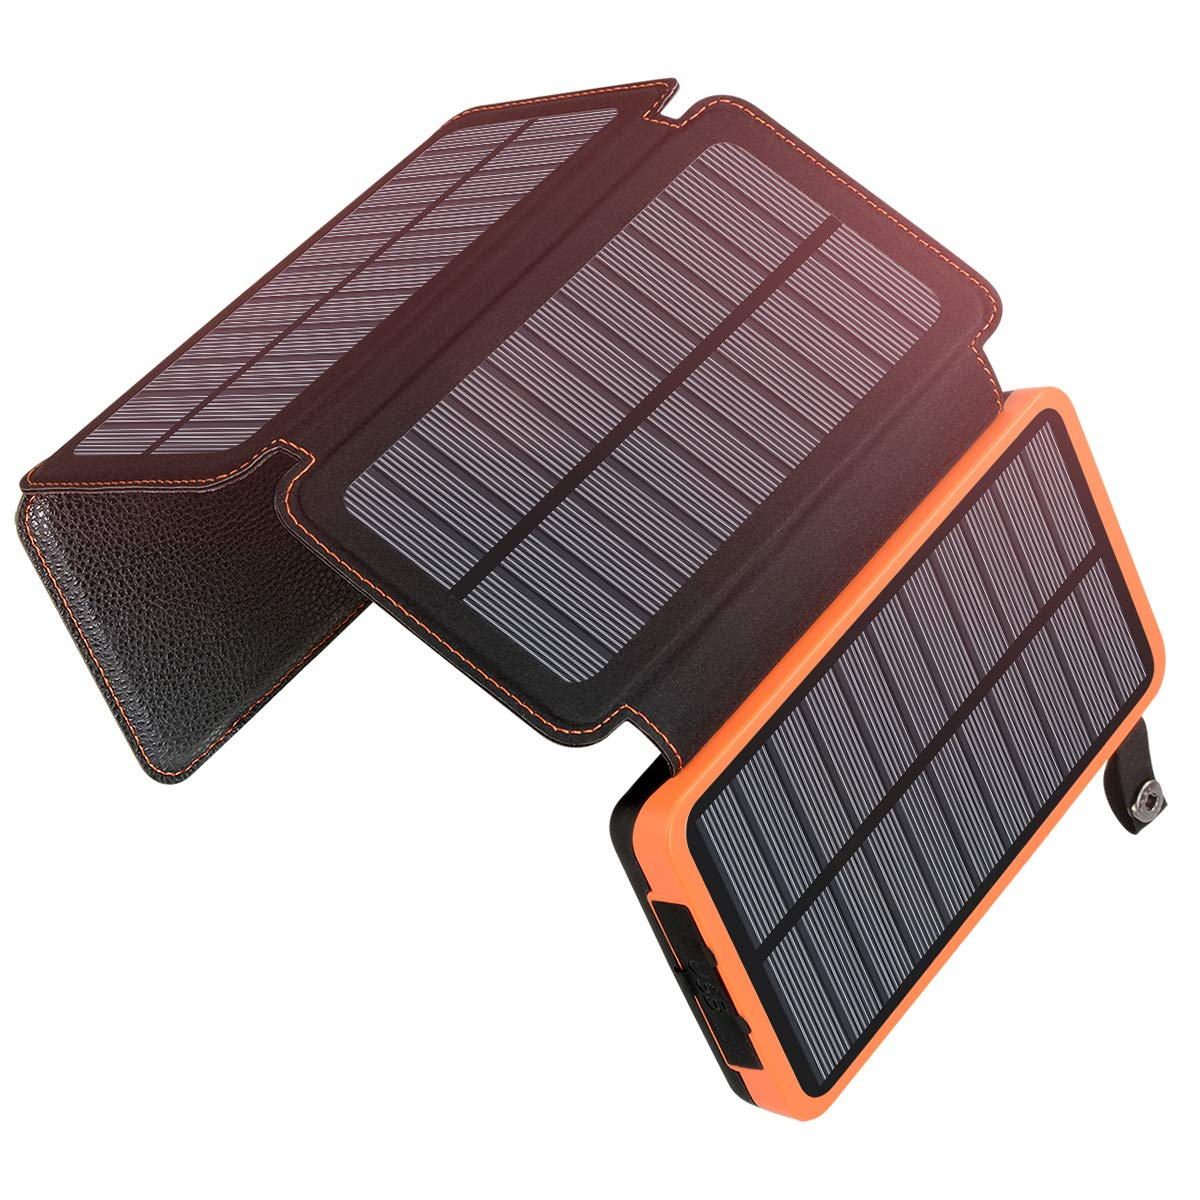 25000mAh Solar Charger ADDTOP Portable Solar Power Bank with Dual 2.1A Outputs Waterproof External Battery Pack Compatible Most Smart Phones, Tablets and More (92.5Wh 2018 Upgraded) by ADDTOP